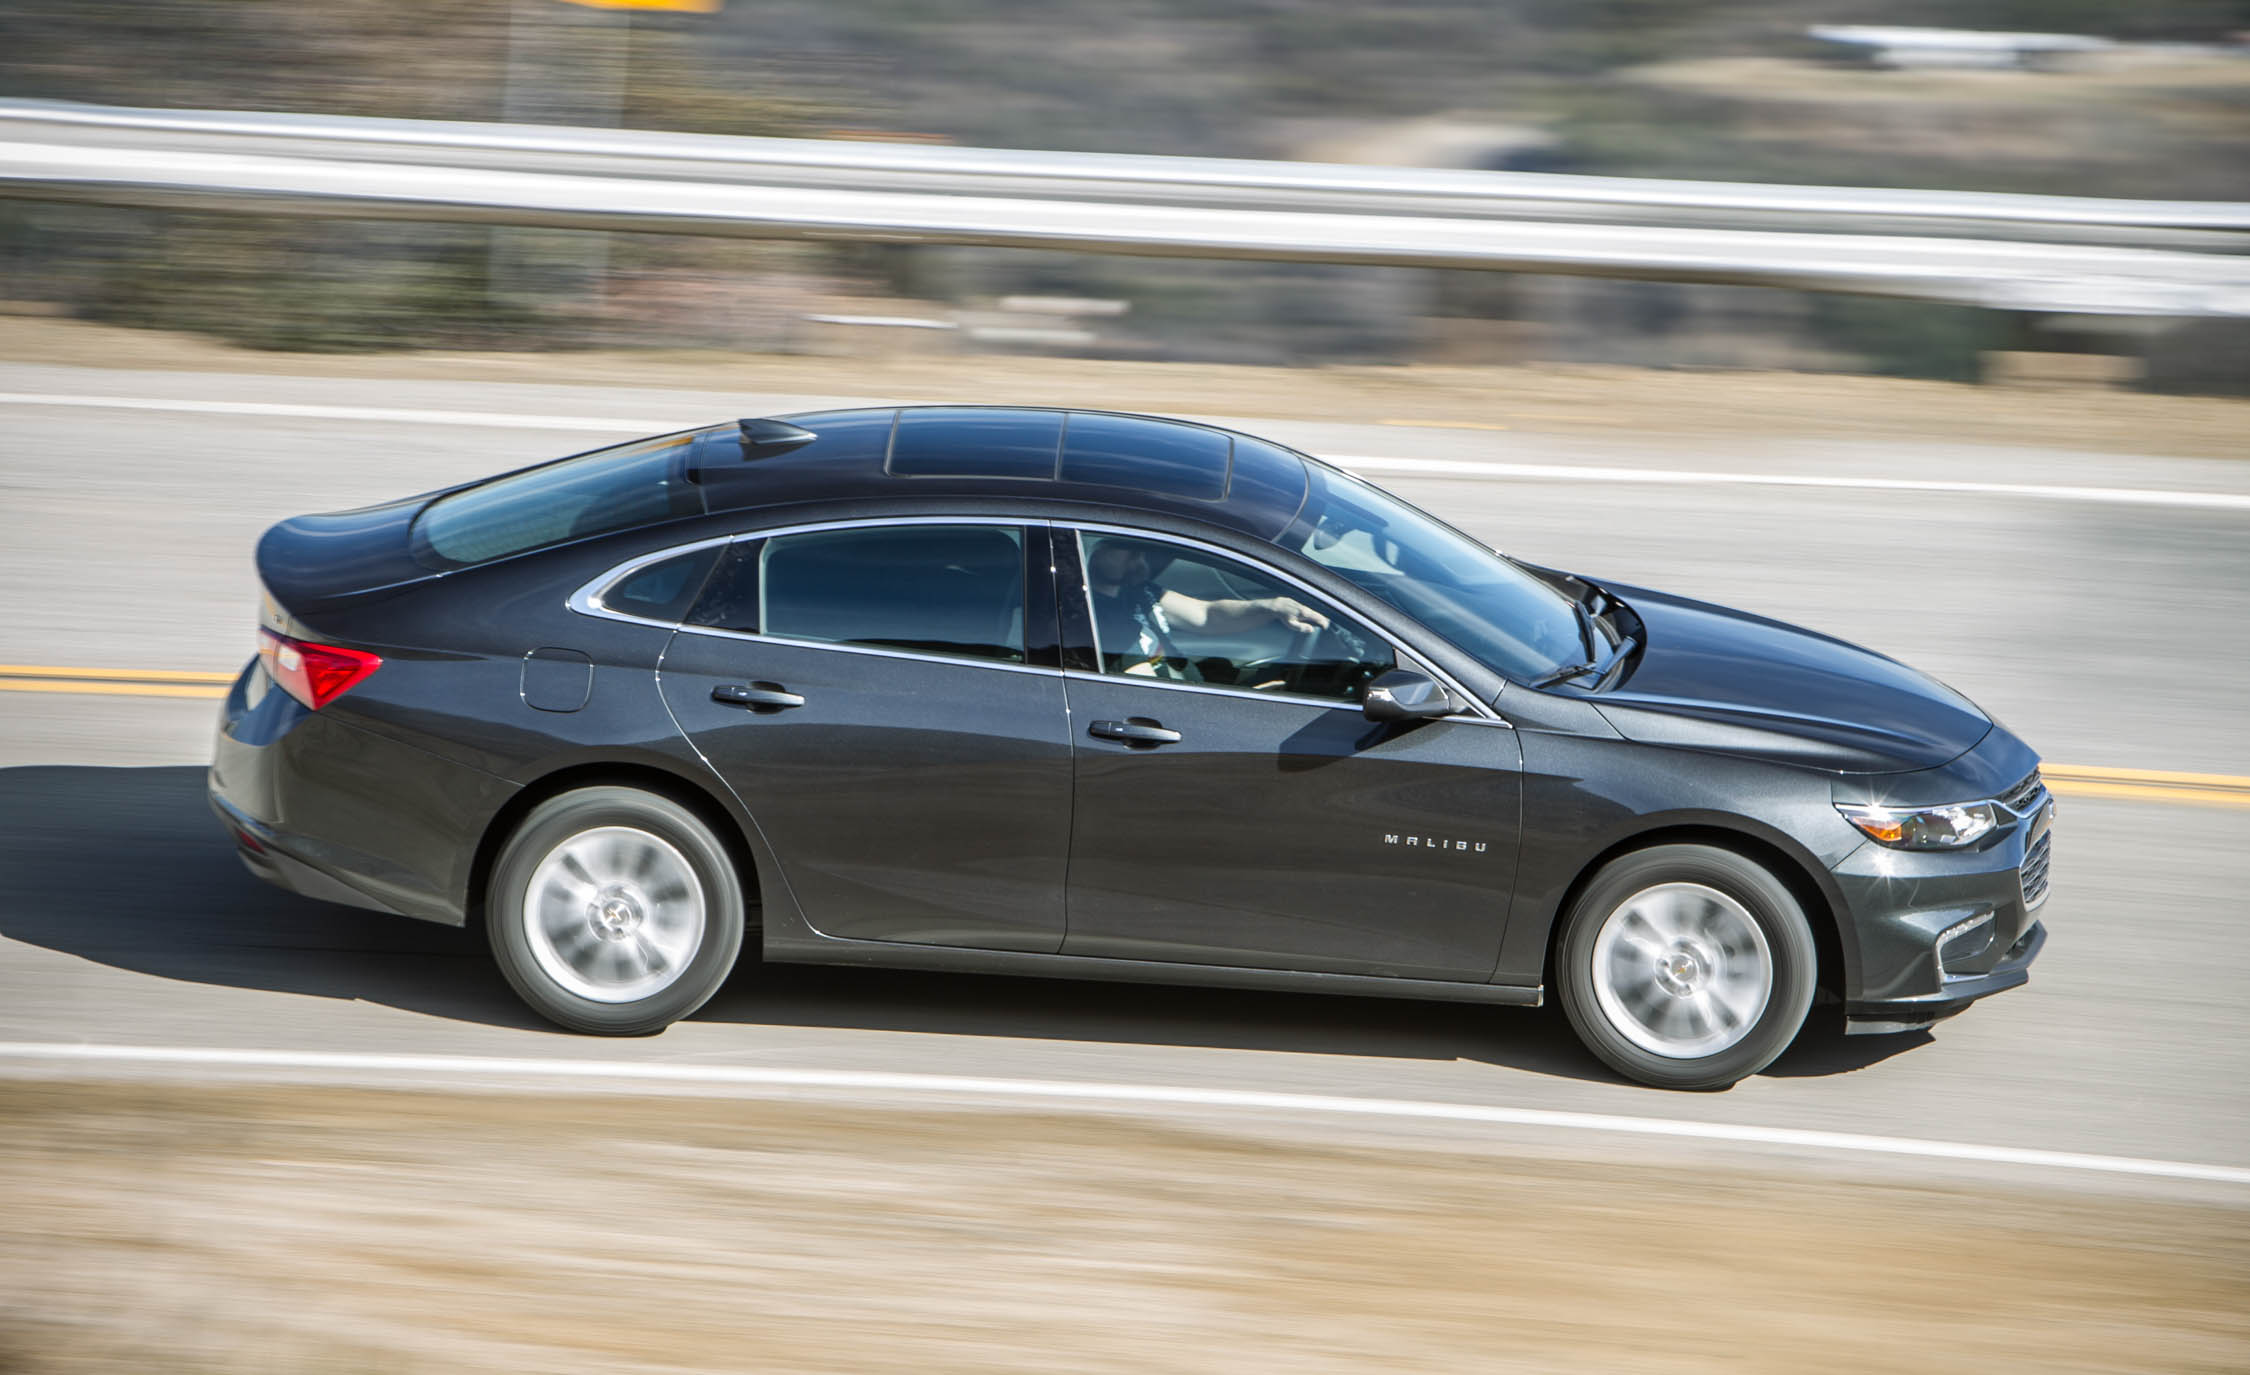 2016 Chevrolet Malibu LT Test Side View